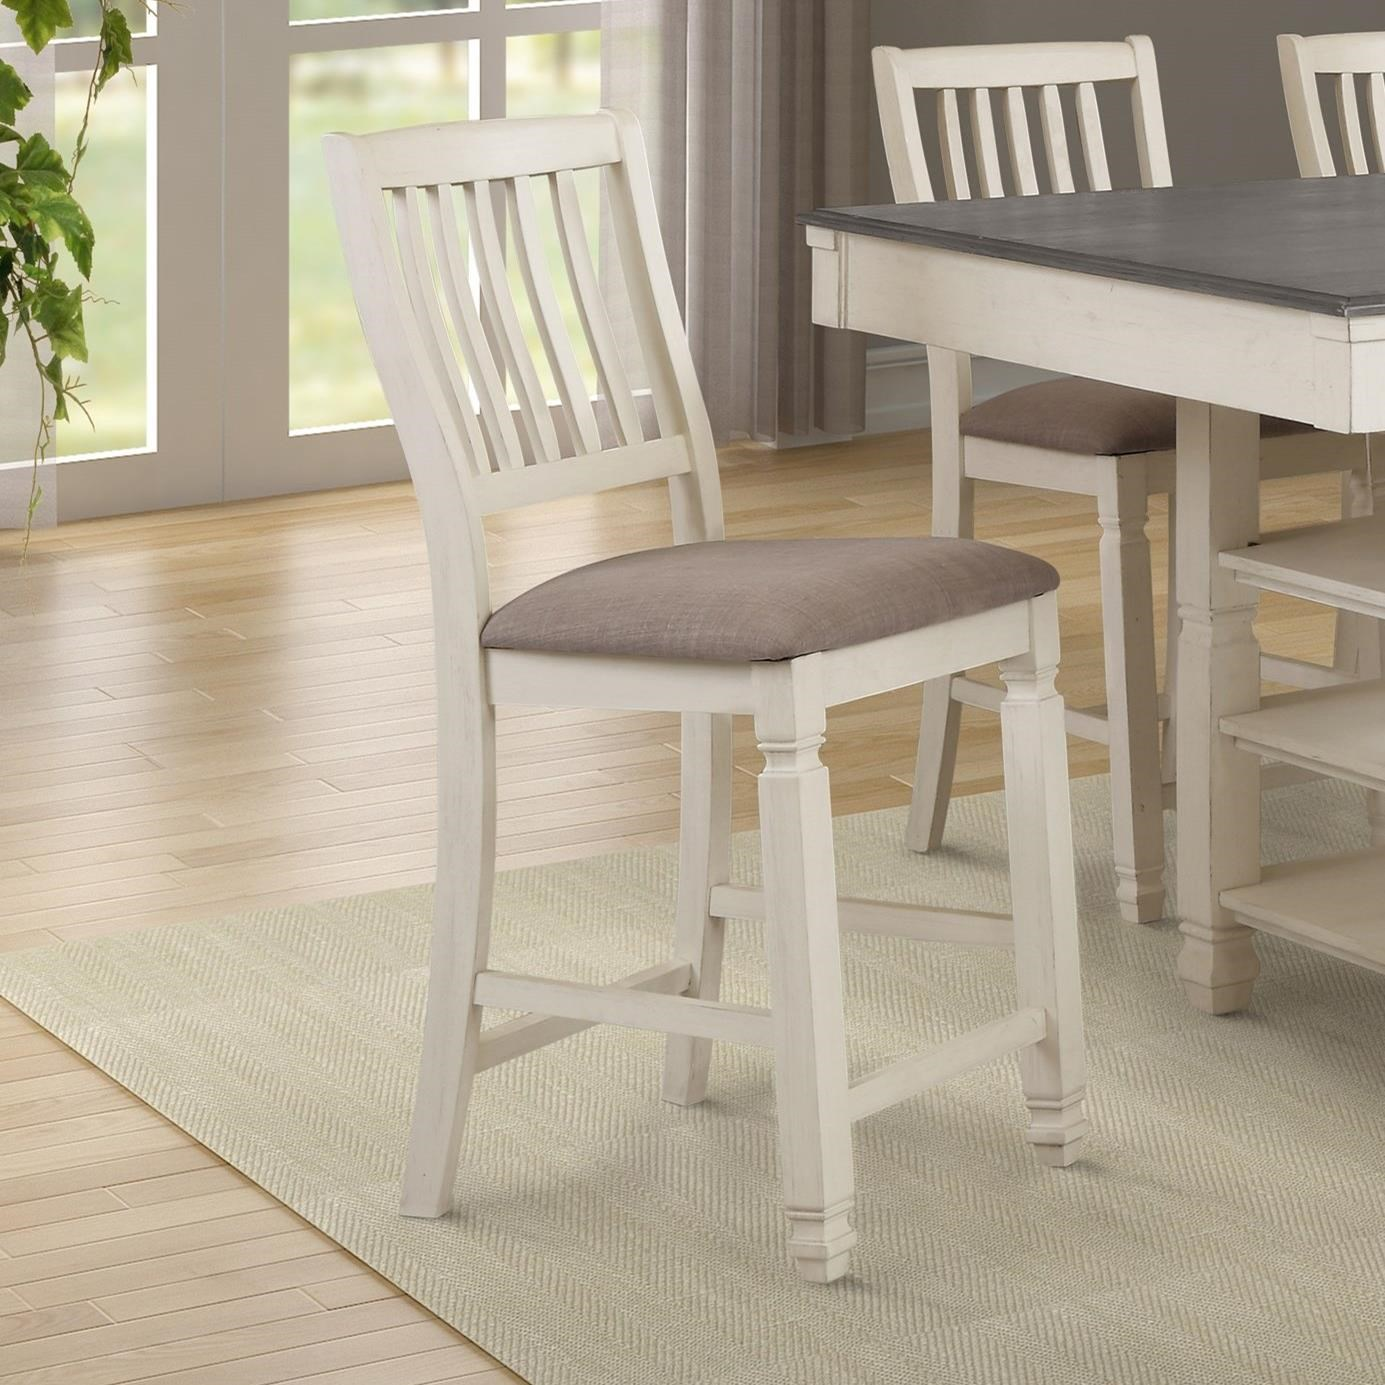 MAPLE Pub Chair by Lifestyle at EFO Furniture Outlet